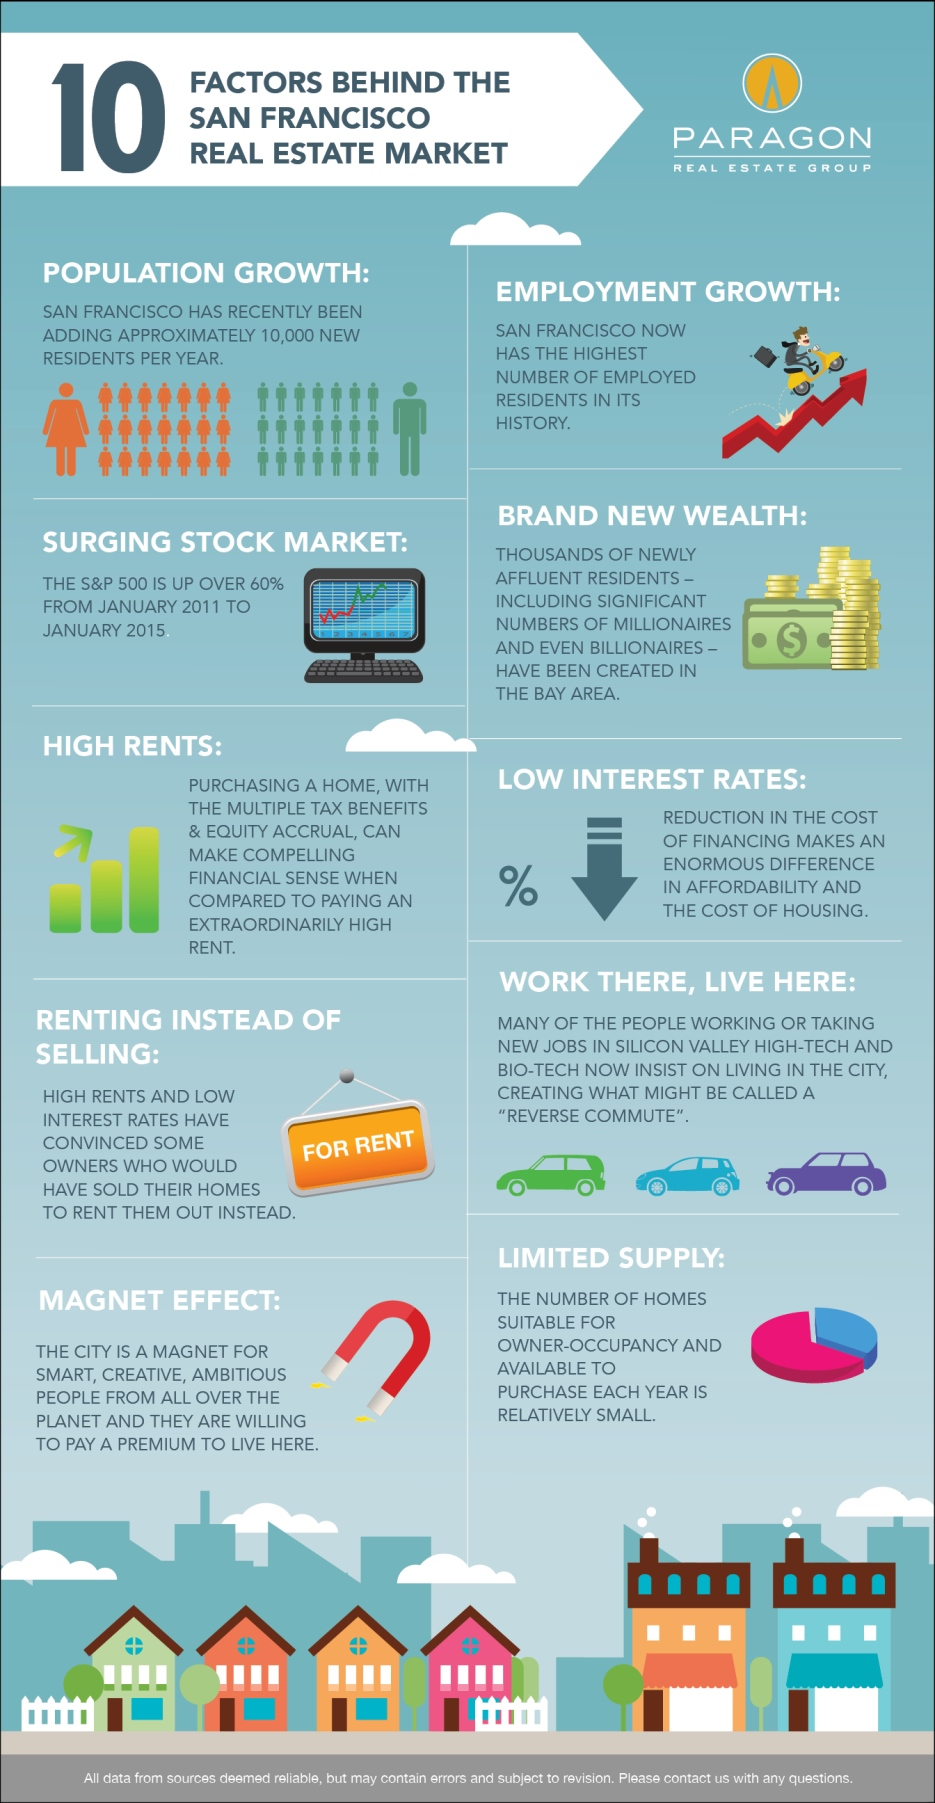 10-factors-behind-the-san-francisco-real-estate-market-infographic